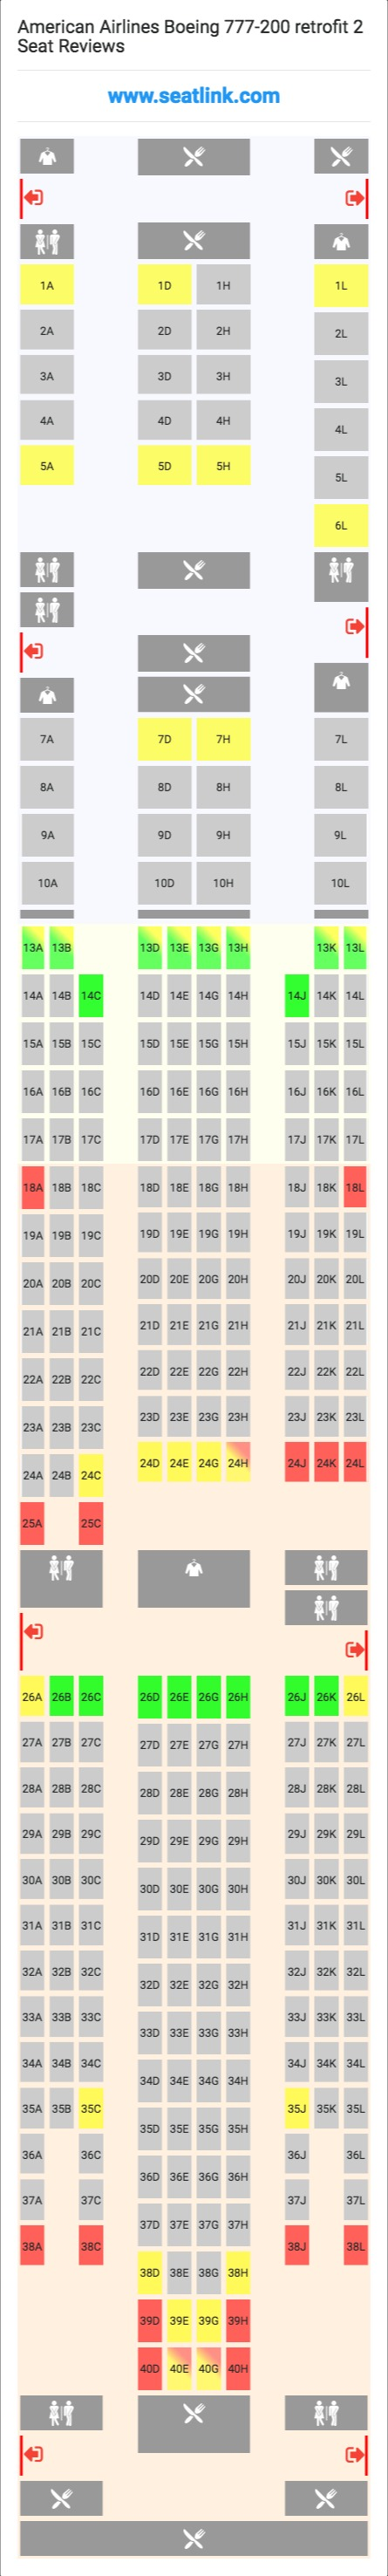 american airlines boeing 777 200 retrofit 2 772 seat map